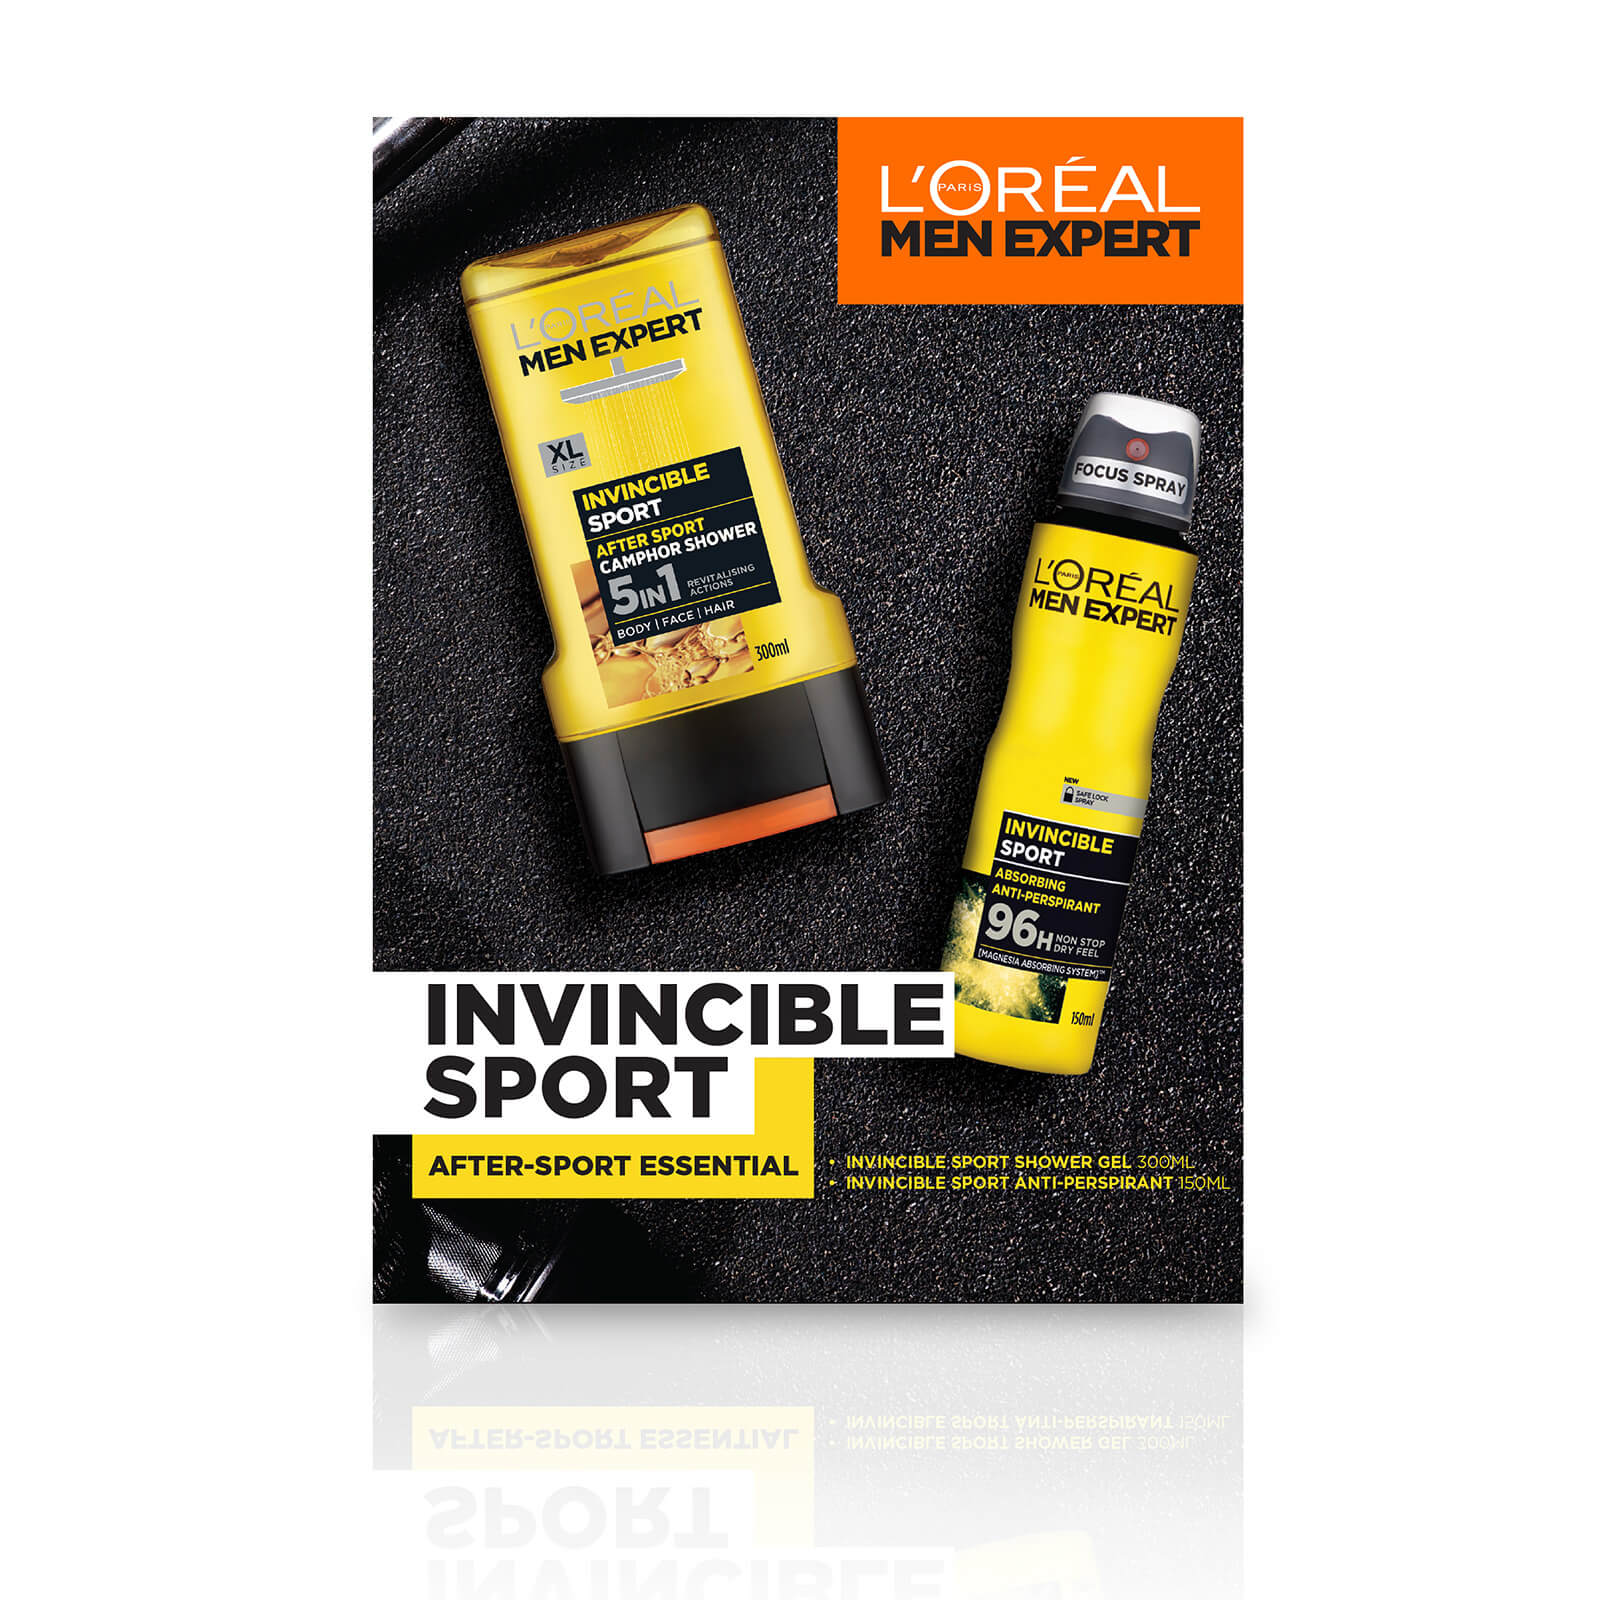 L'Oreal Men Expert Invincible Sport 2 Piece Gift Set for Him (Worth £10.00)